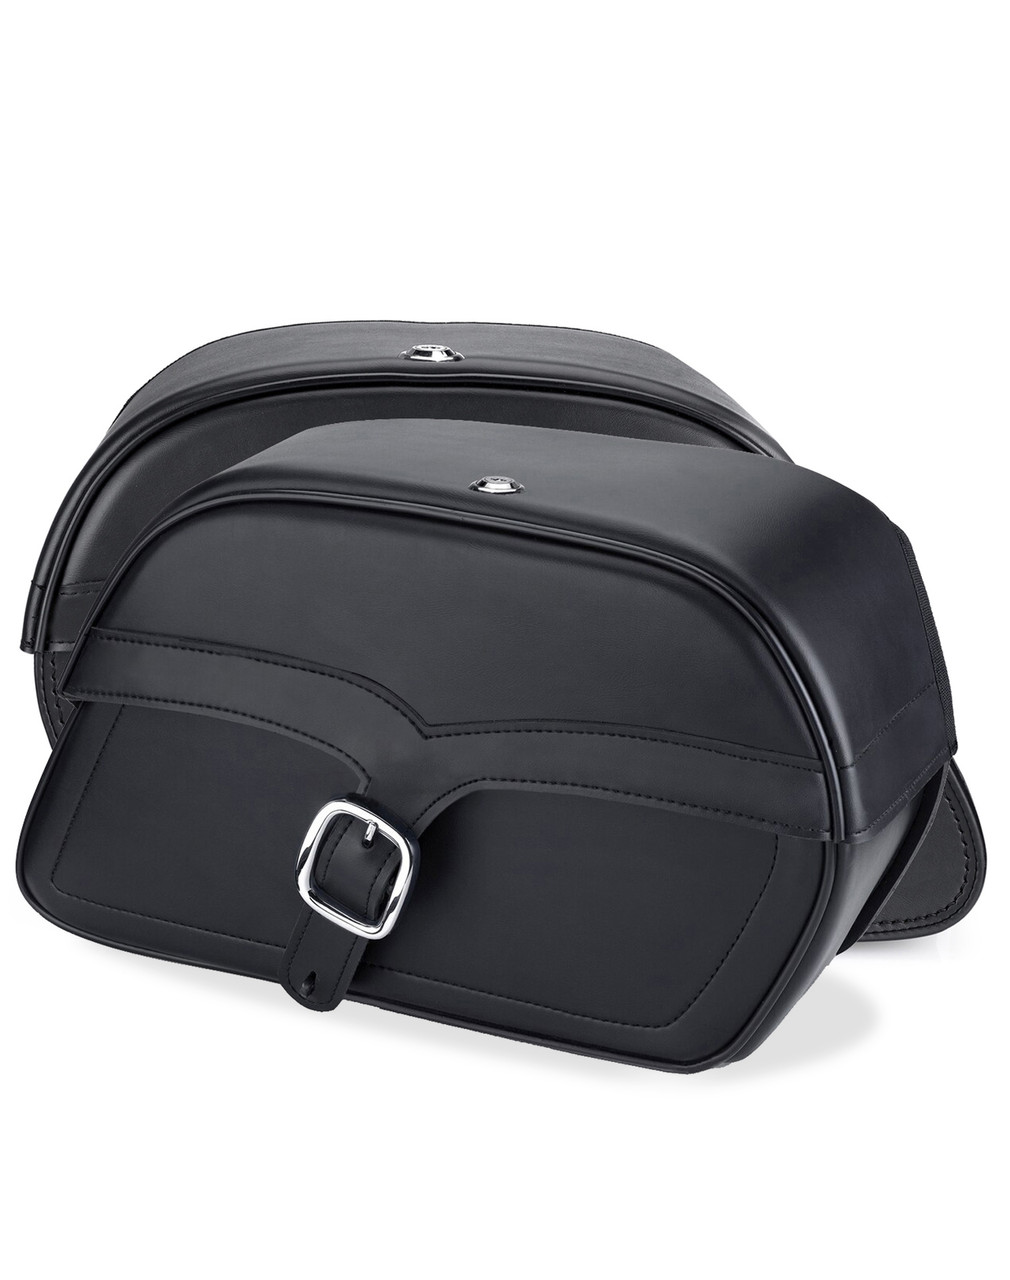 Honda 1500 Valkyrie Interstate Vikingbags Shock Cutout Single Strap Large Slanted Leather Motorcycle Saddlebags Both Bags View